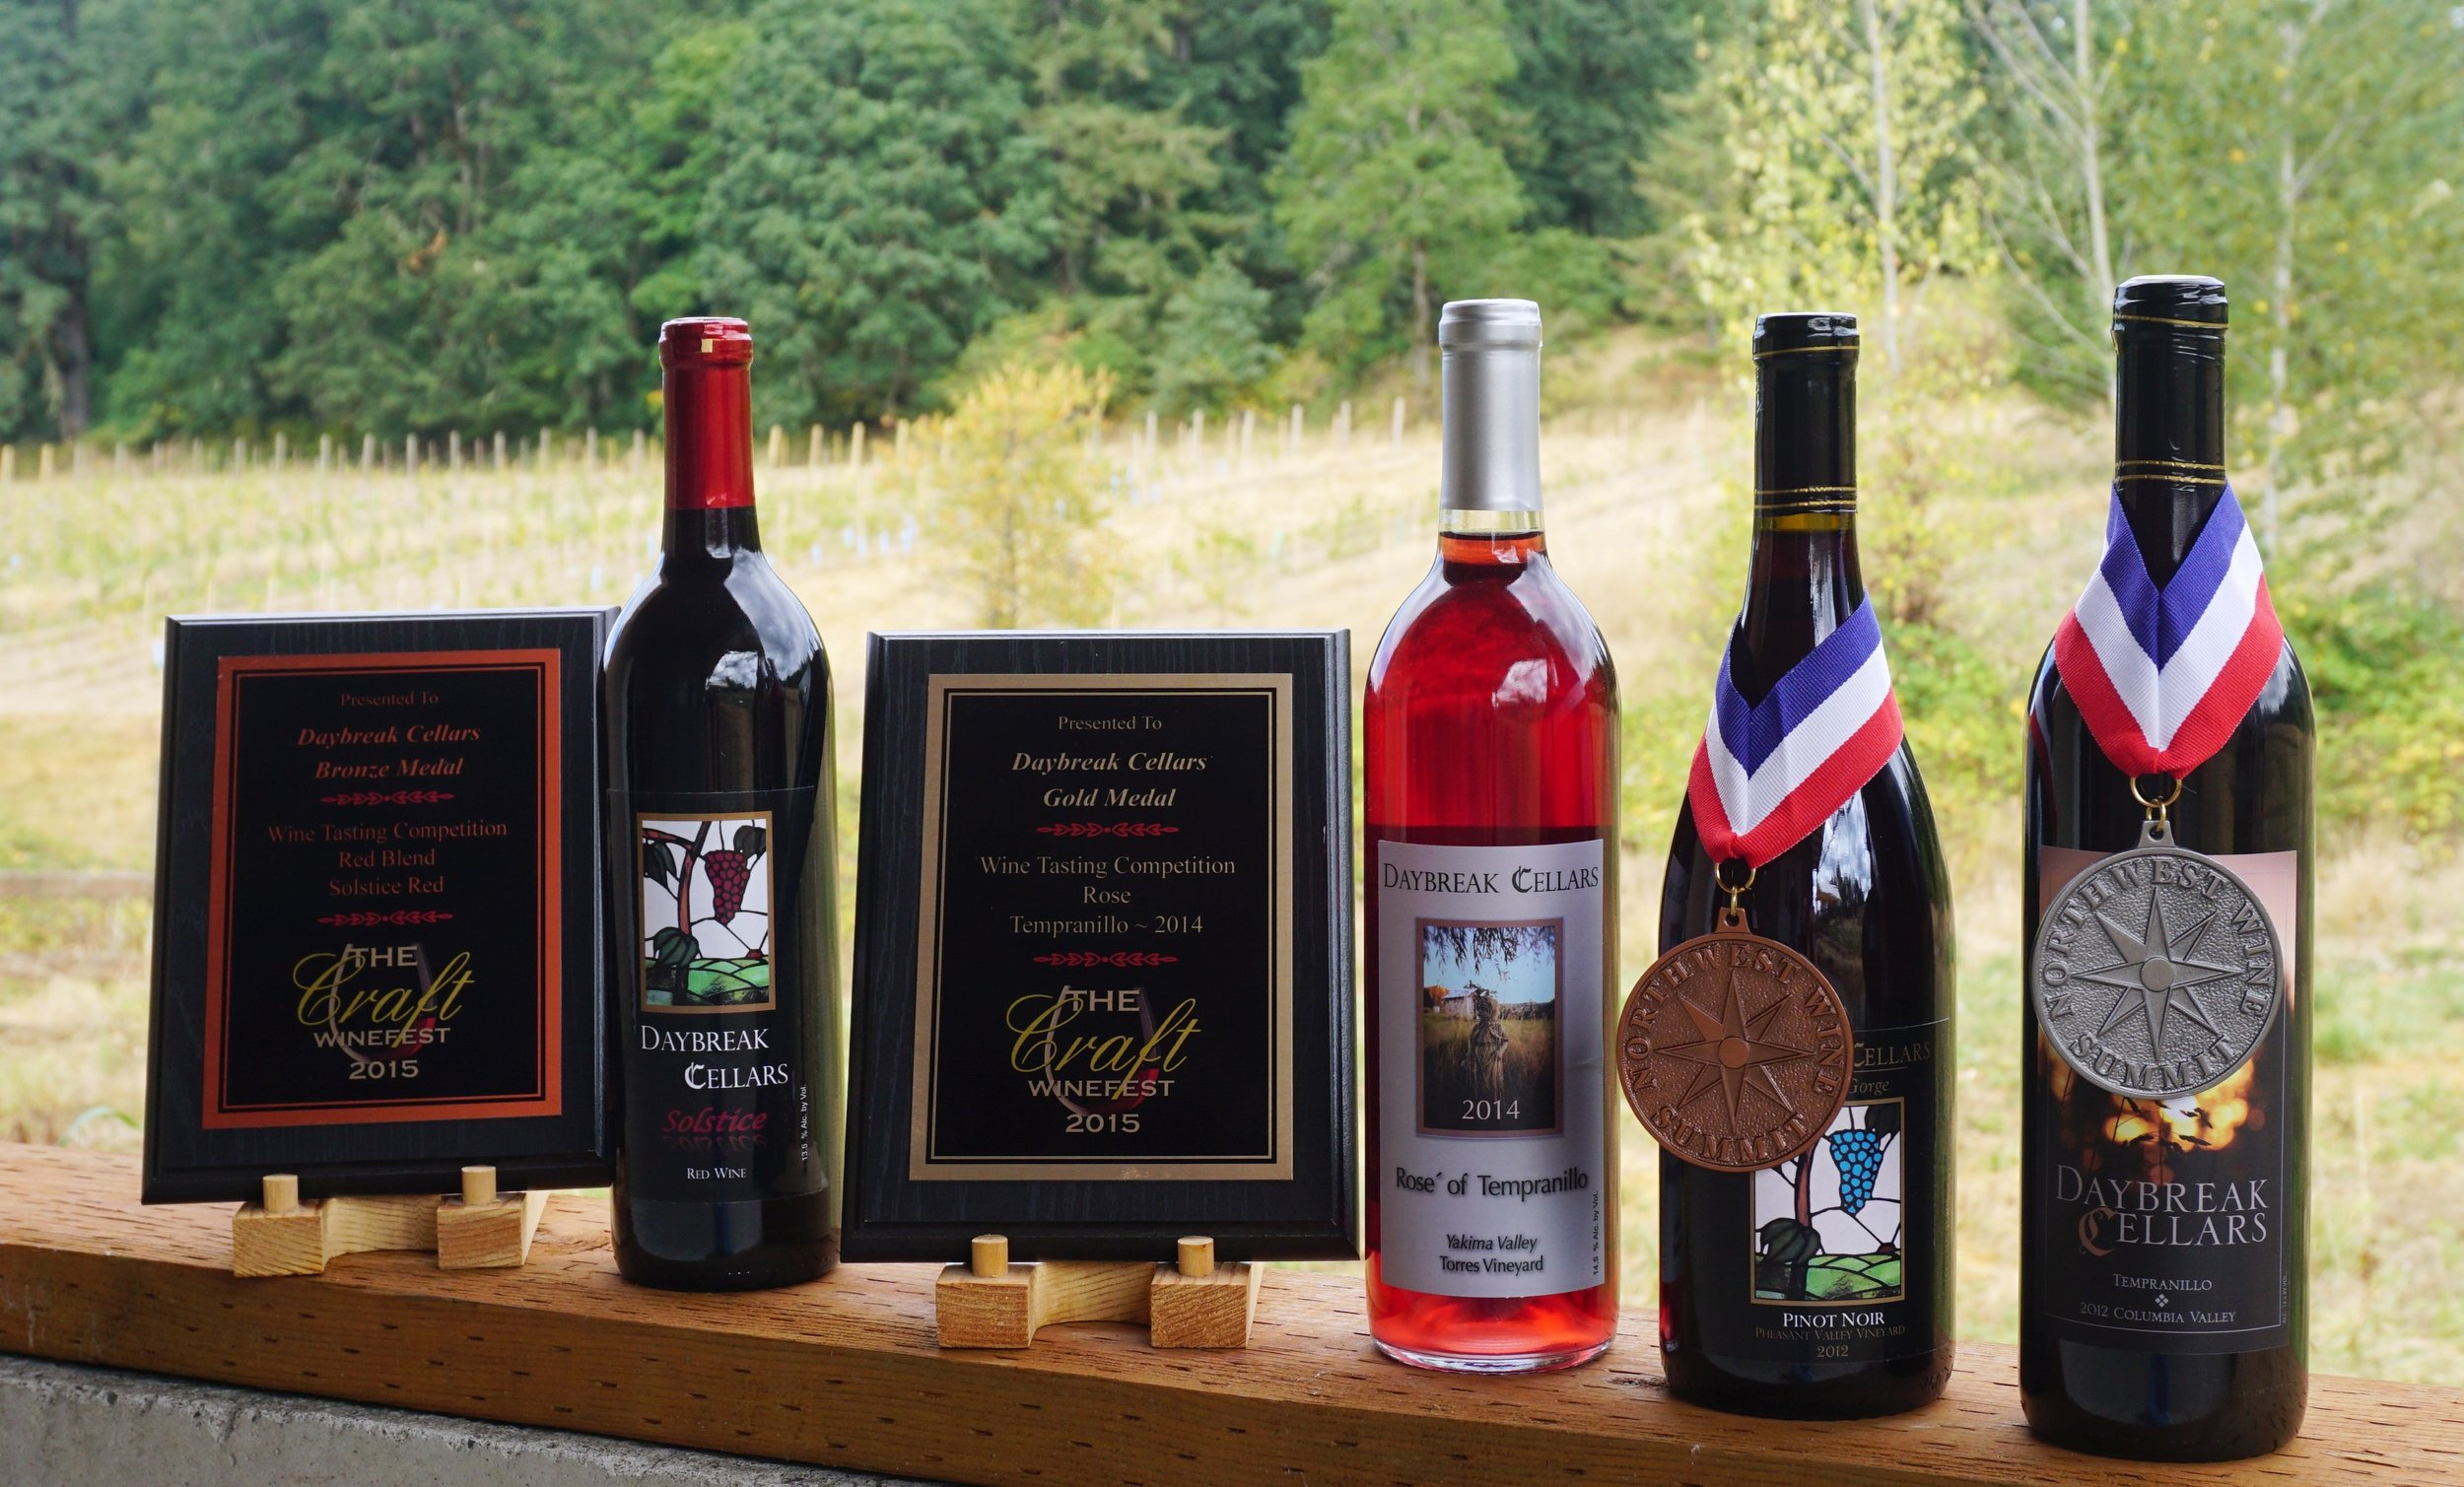 From noon–5 p.m. this Saturday, September 5th and Sunday, September 6th, wine lovers will be able to taste from Daybreak Cellars' eight-wine lineup—including their four award-winners—at the vineyard site. Viki Eierdam